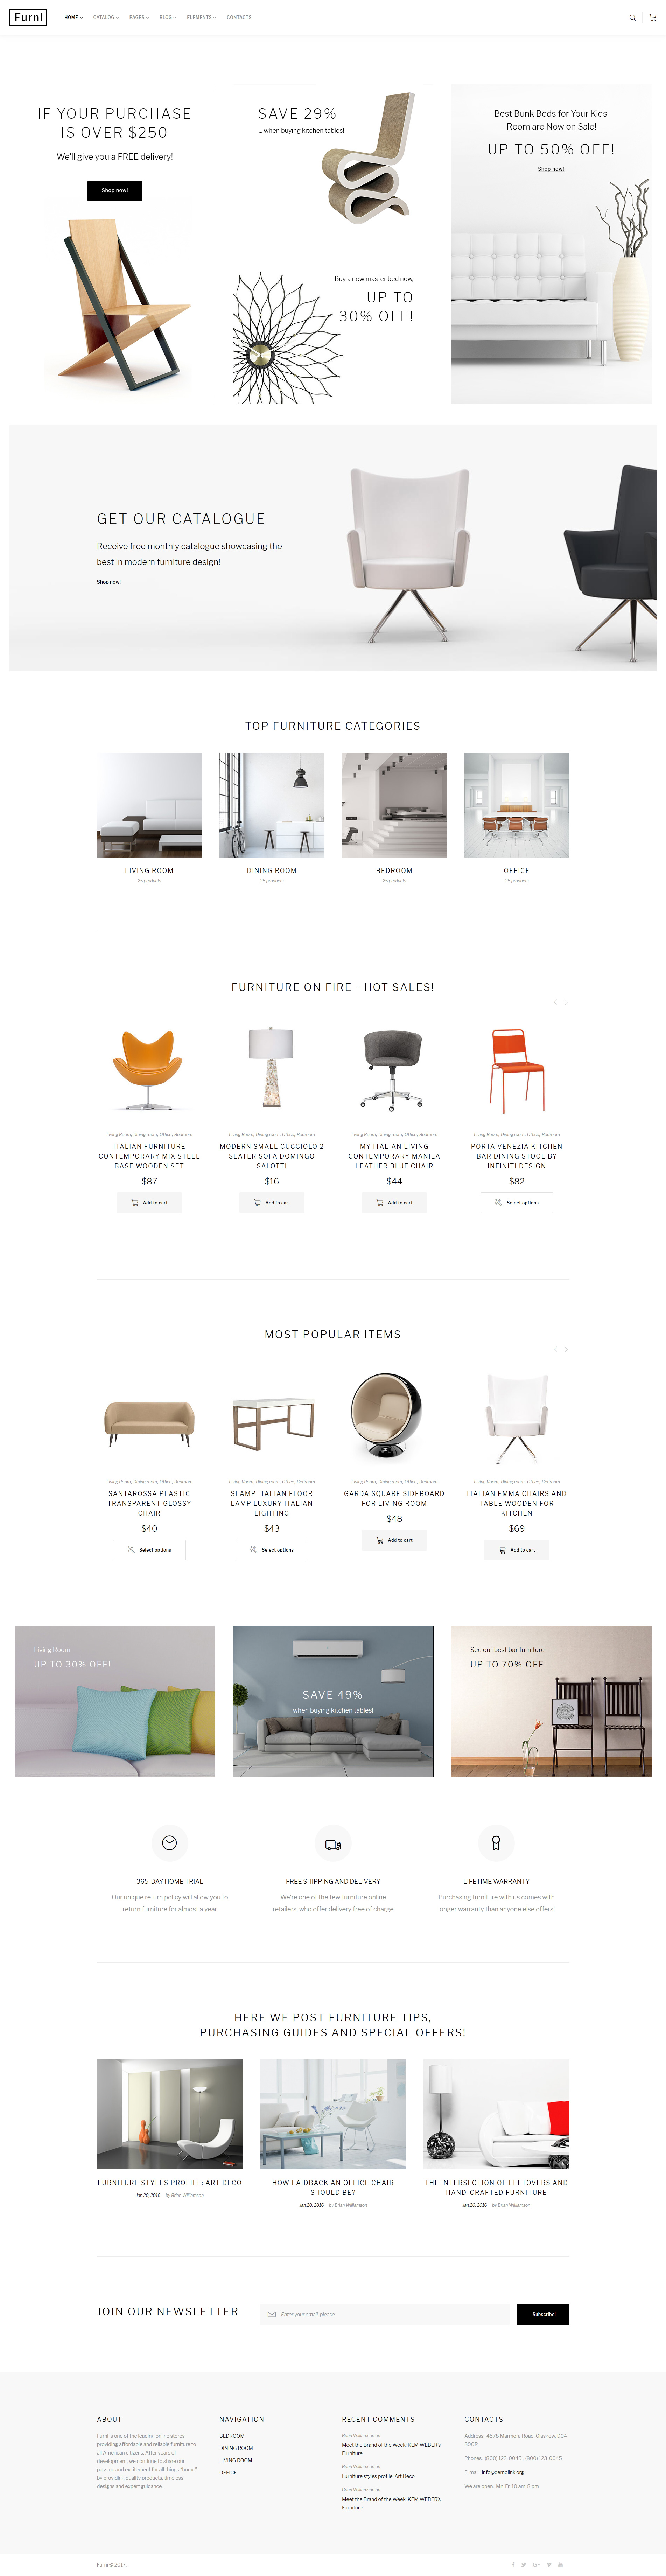 """Furni - Furniture Store Multipage"" modèle web adaptatif #62272"